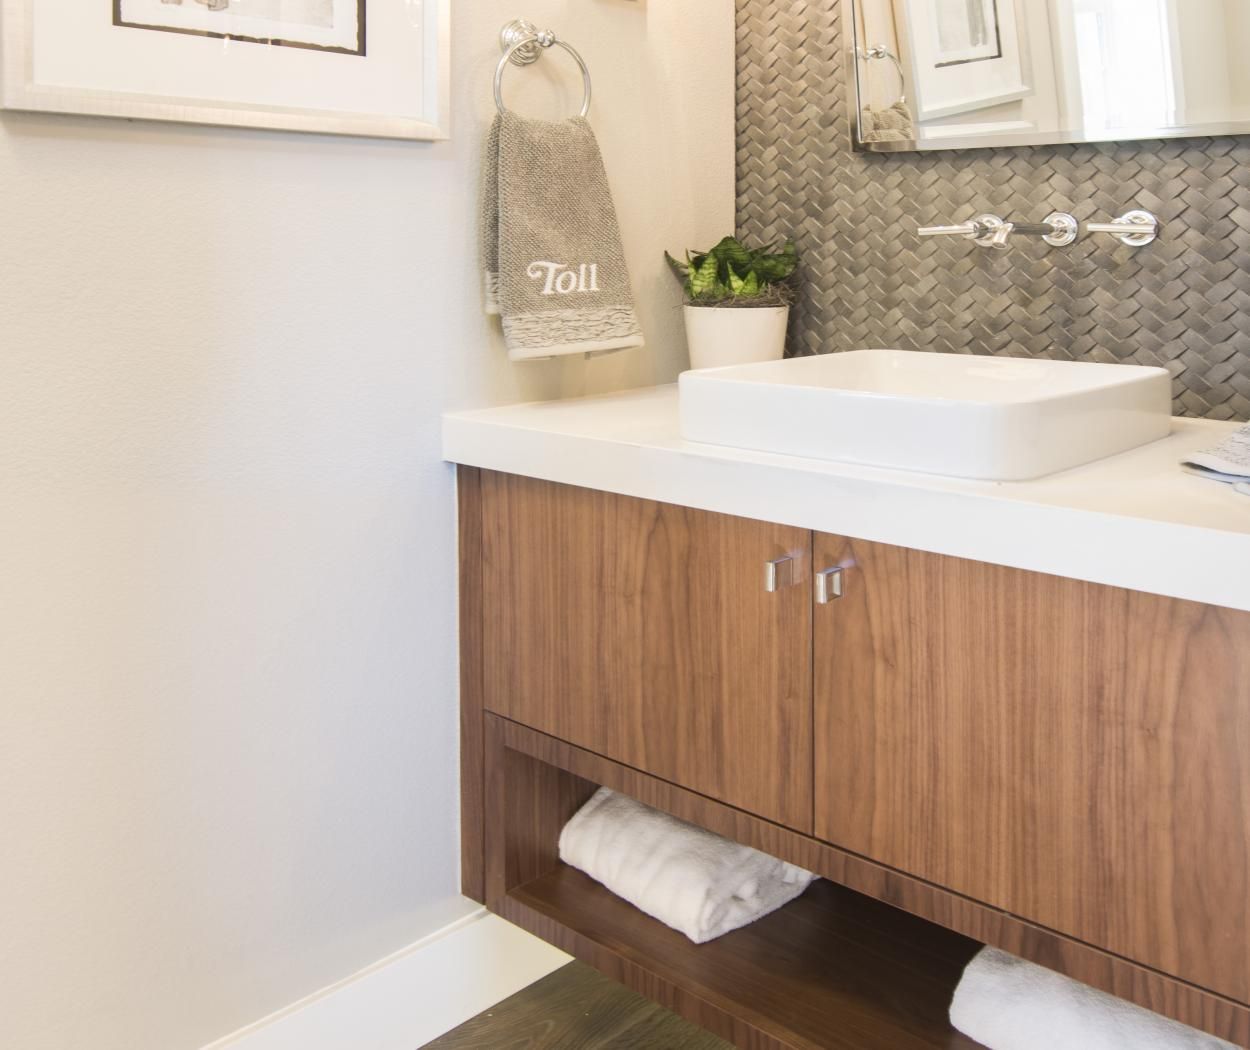 Walnut Contemporary Bathroom Vanity with a White Counter Top and a Built-In Faucet